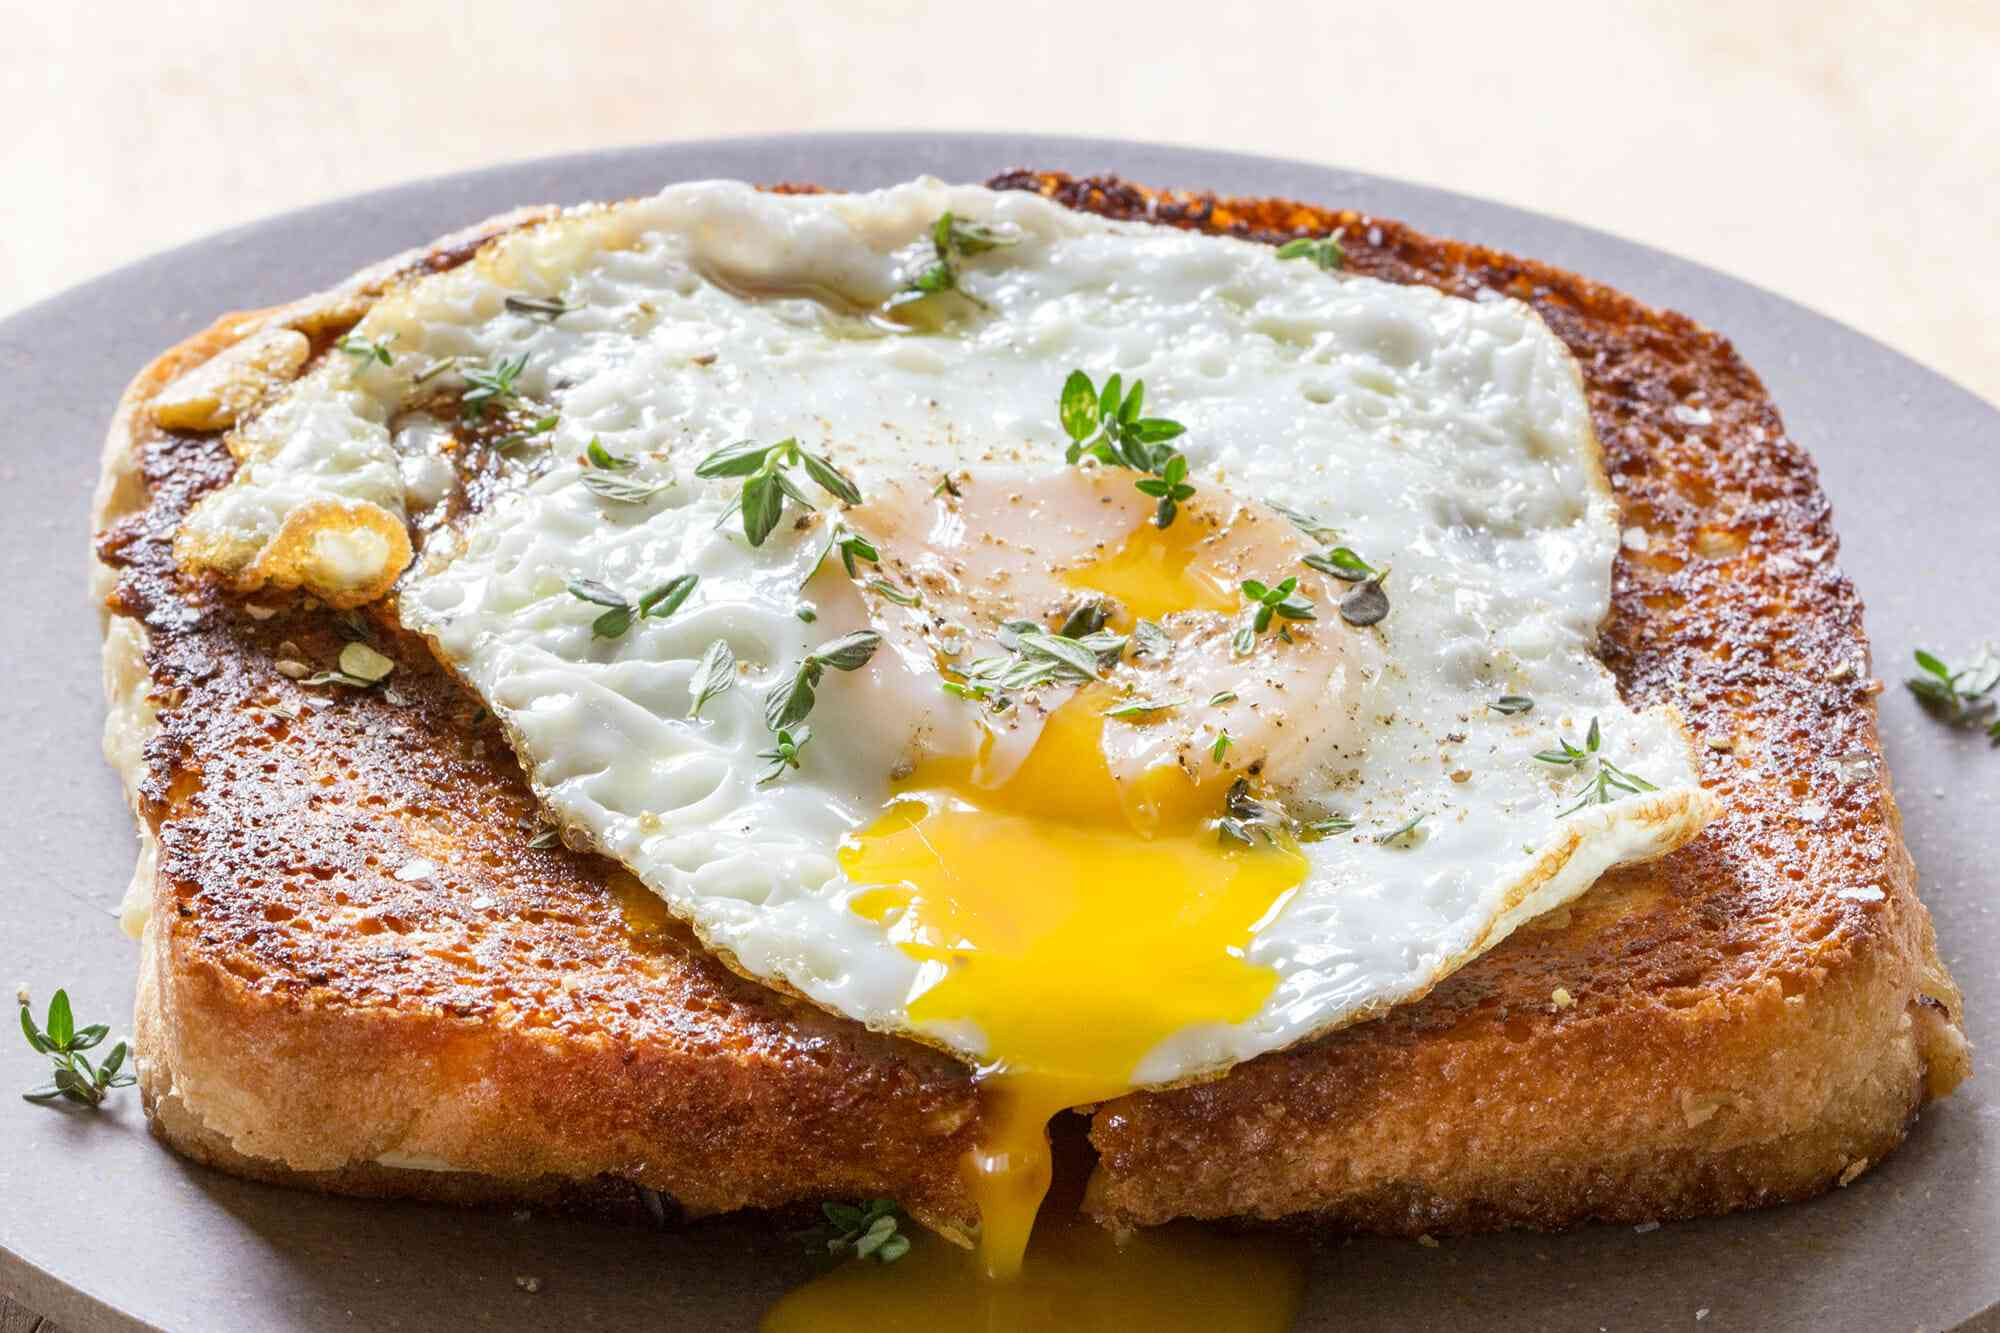 Classic Croque Madame Ham and Cheese Sandwich